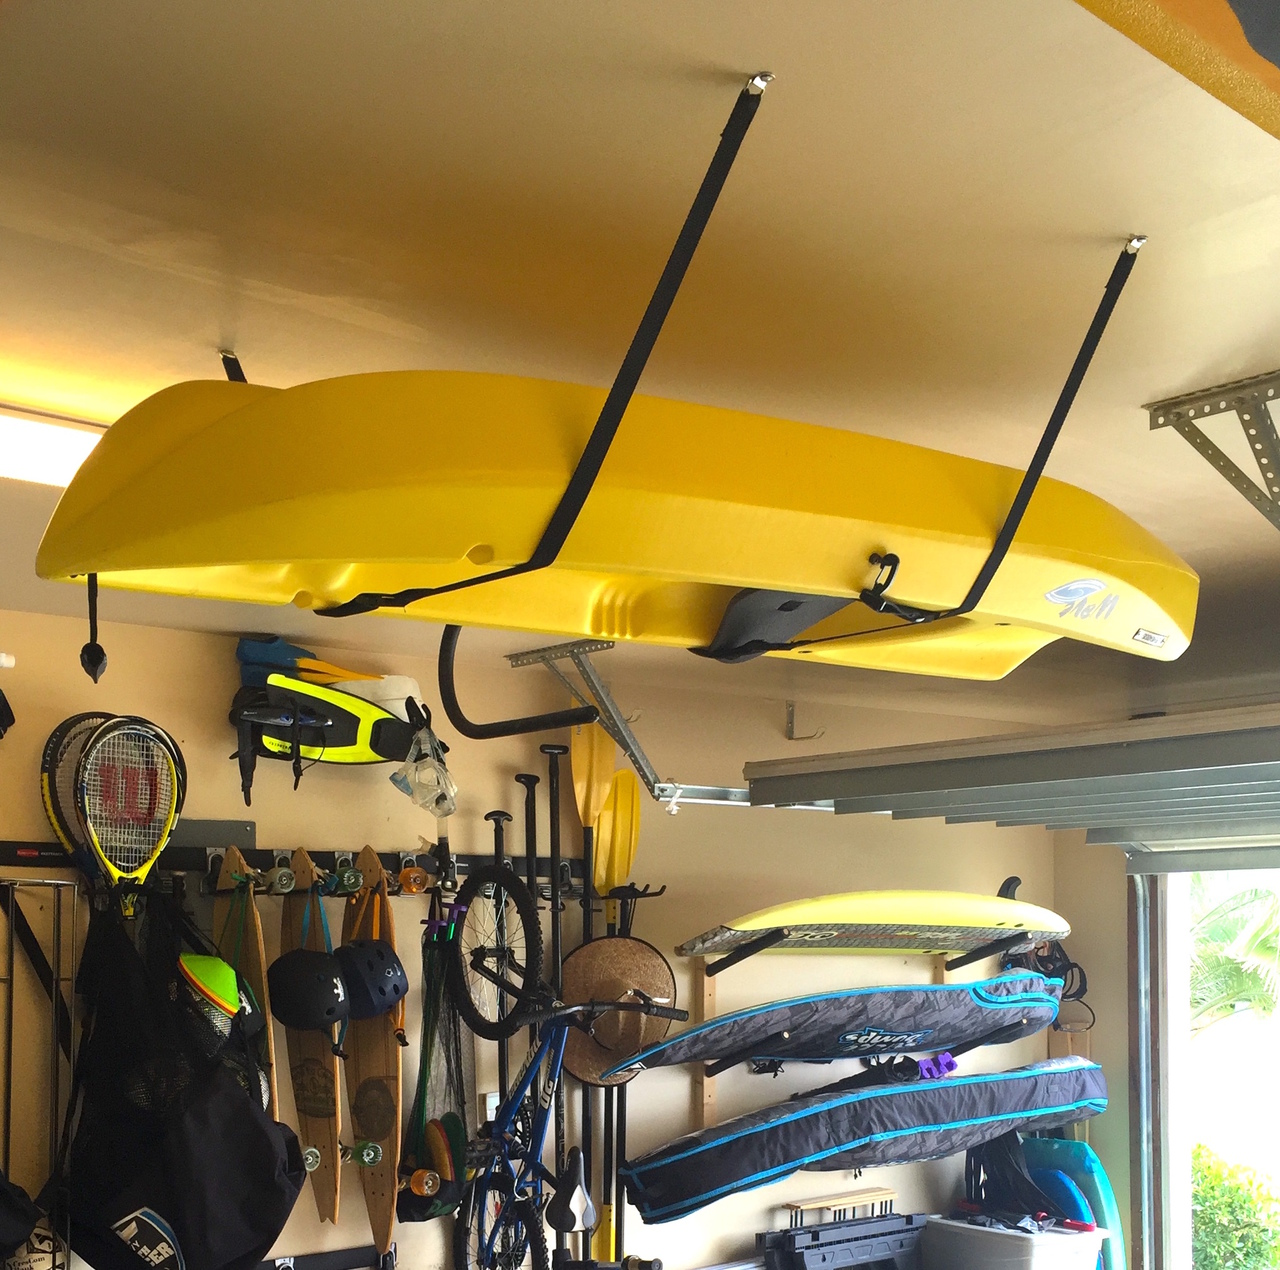 Awesome Home Garage Storage For Whitewater Kayaks